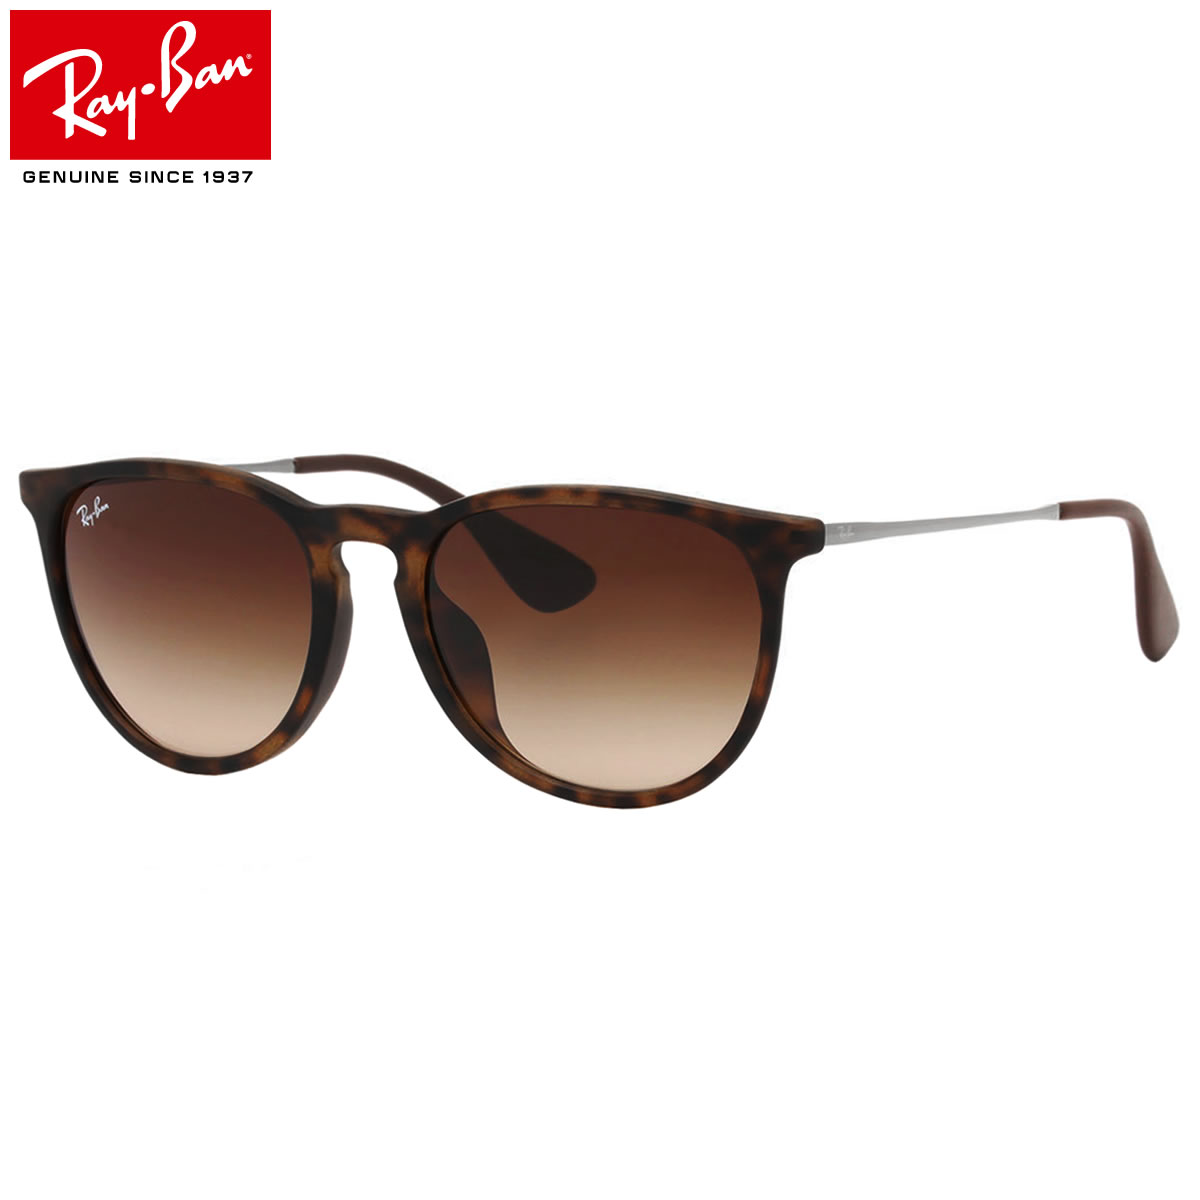 7e8be2ab3c3 Ray-Ban Sunglasses RB4171F 865 13 54size ERIKA FULL FIT (for Asian) GENUINE  NEW rayban ray ban